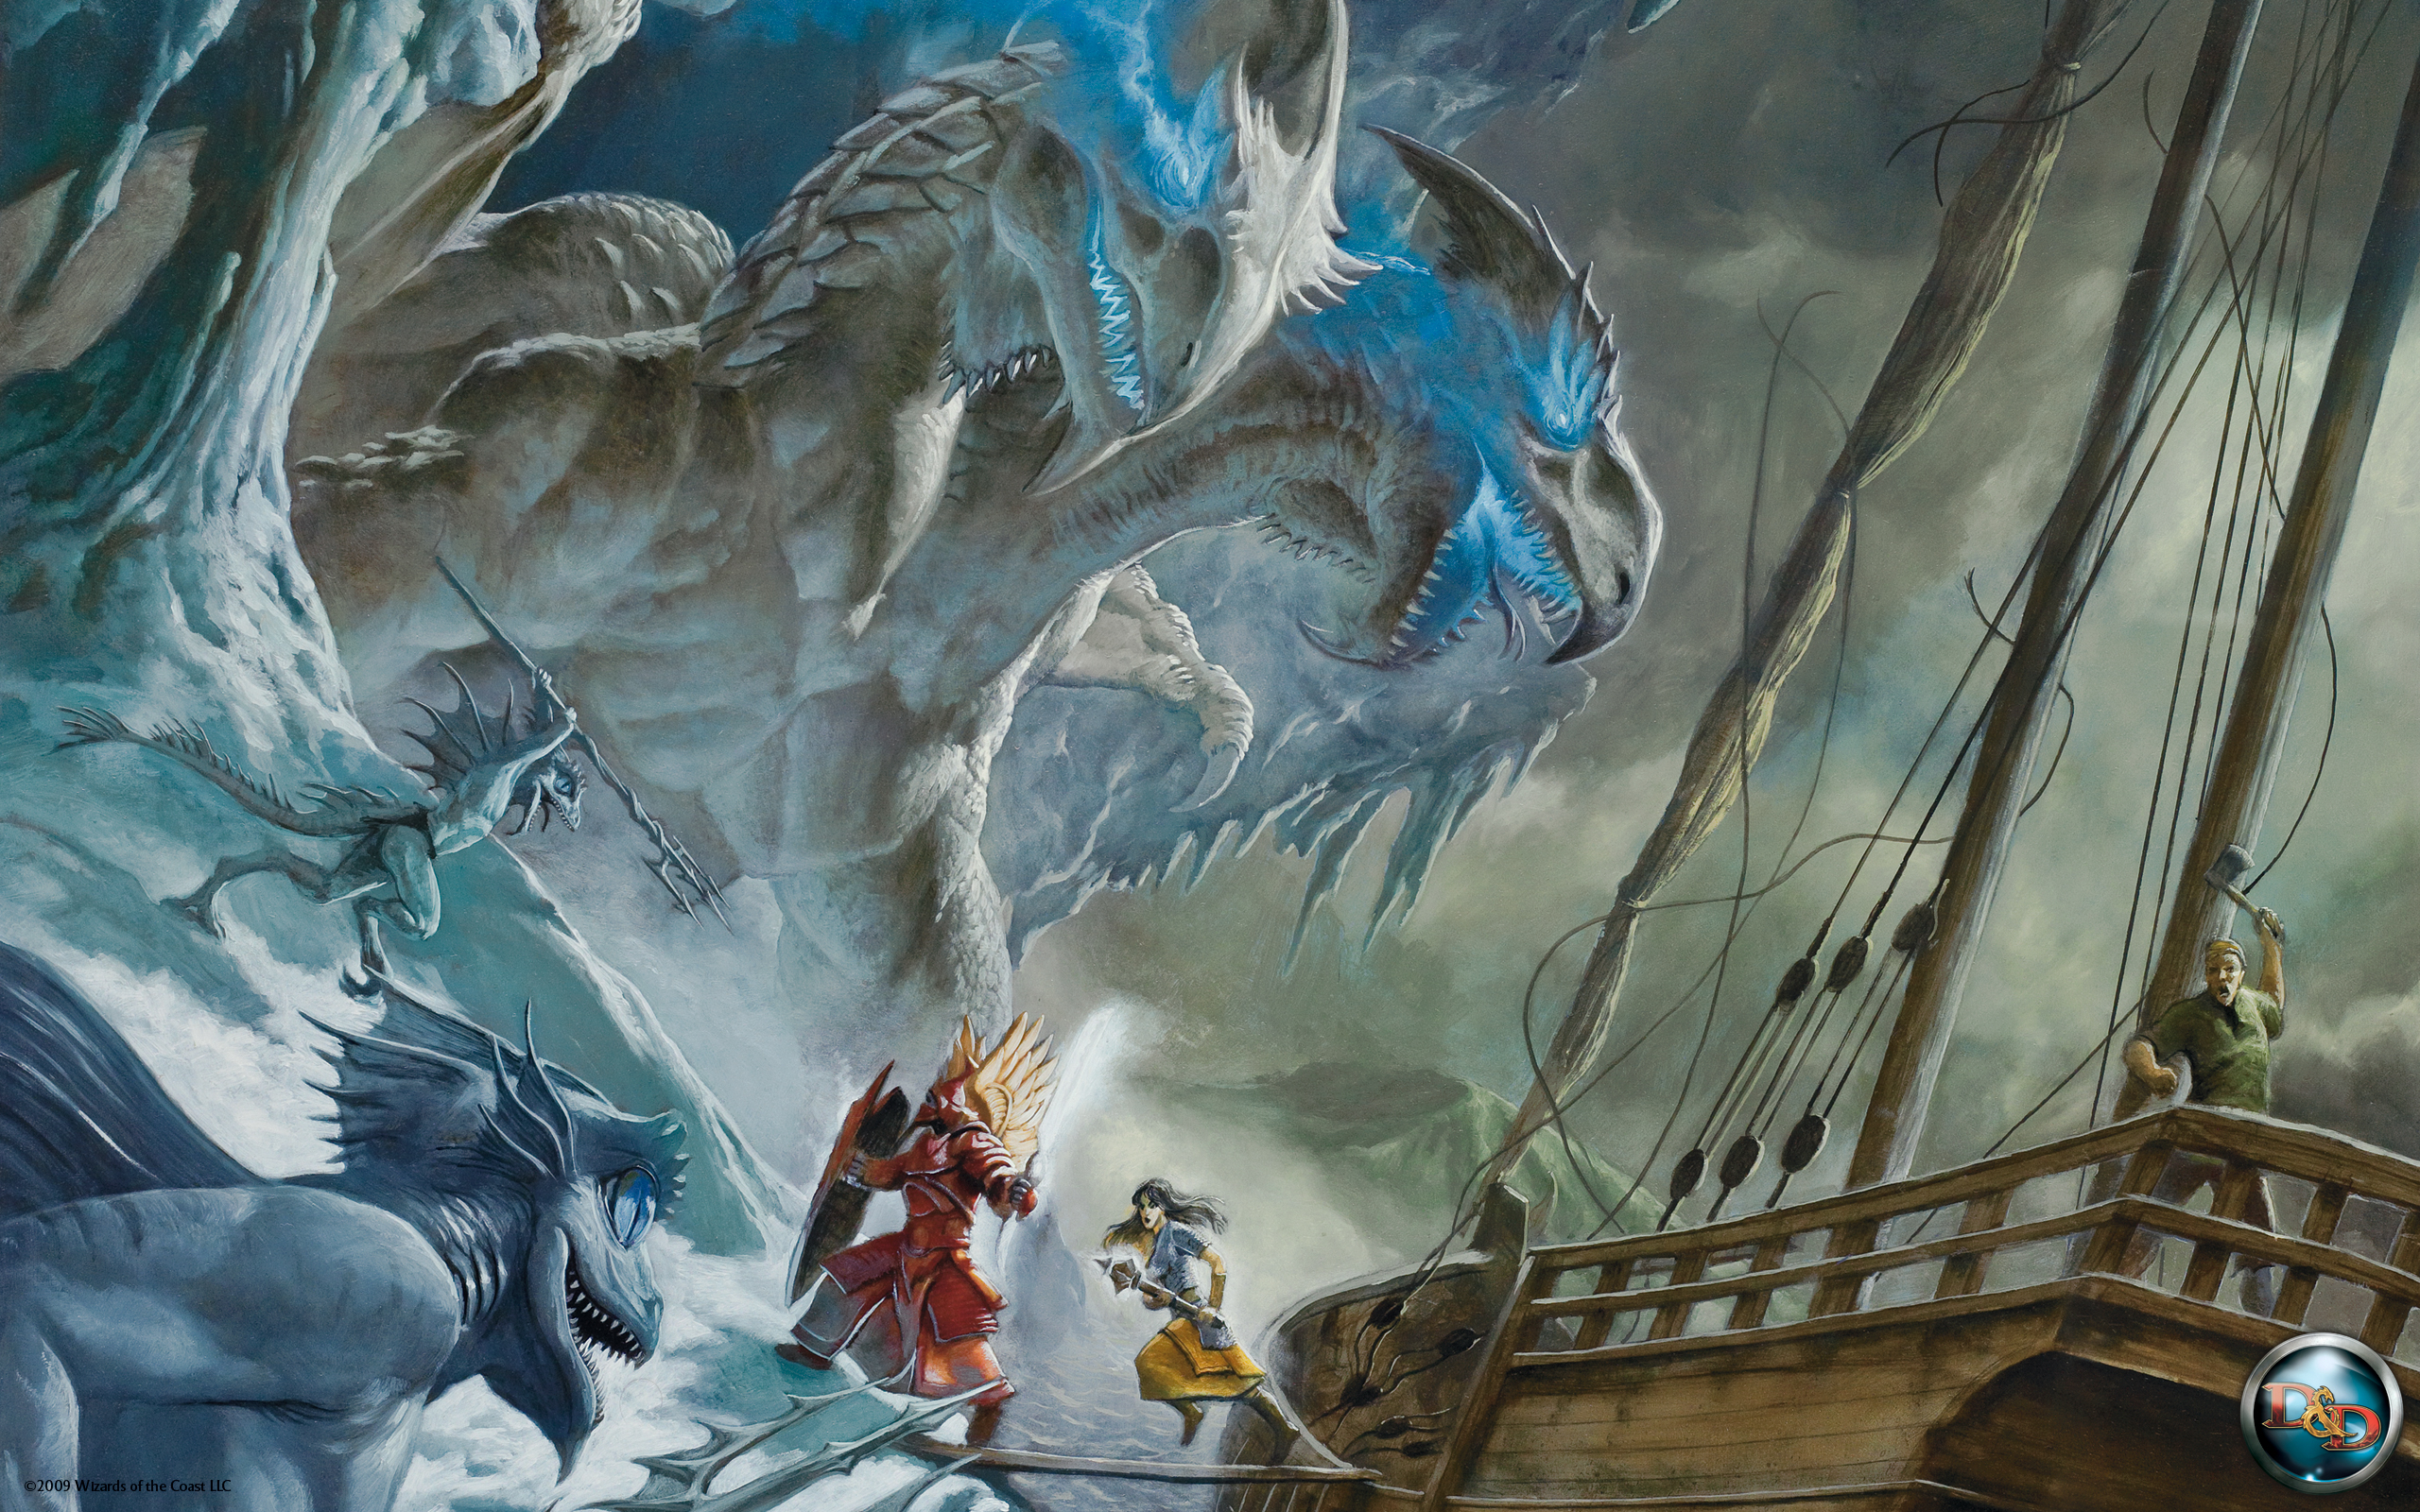 dungeons and dragons Wallpaper Background 50008 2560x1600